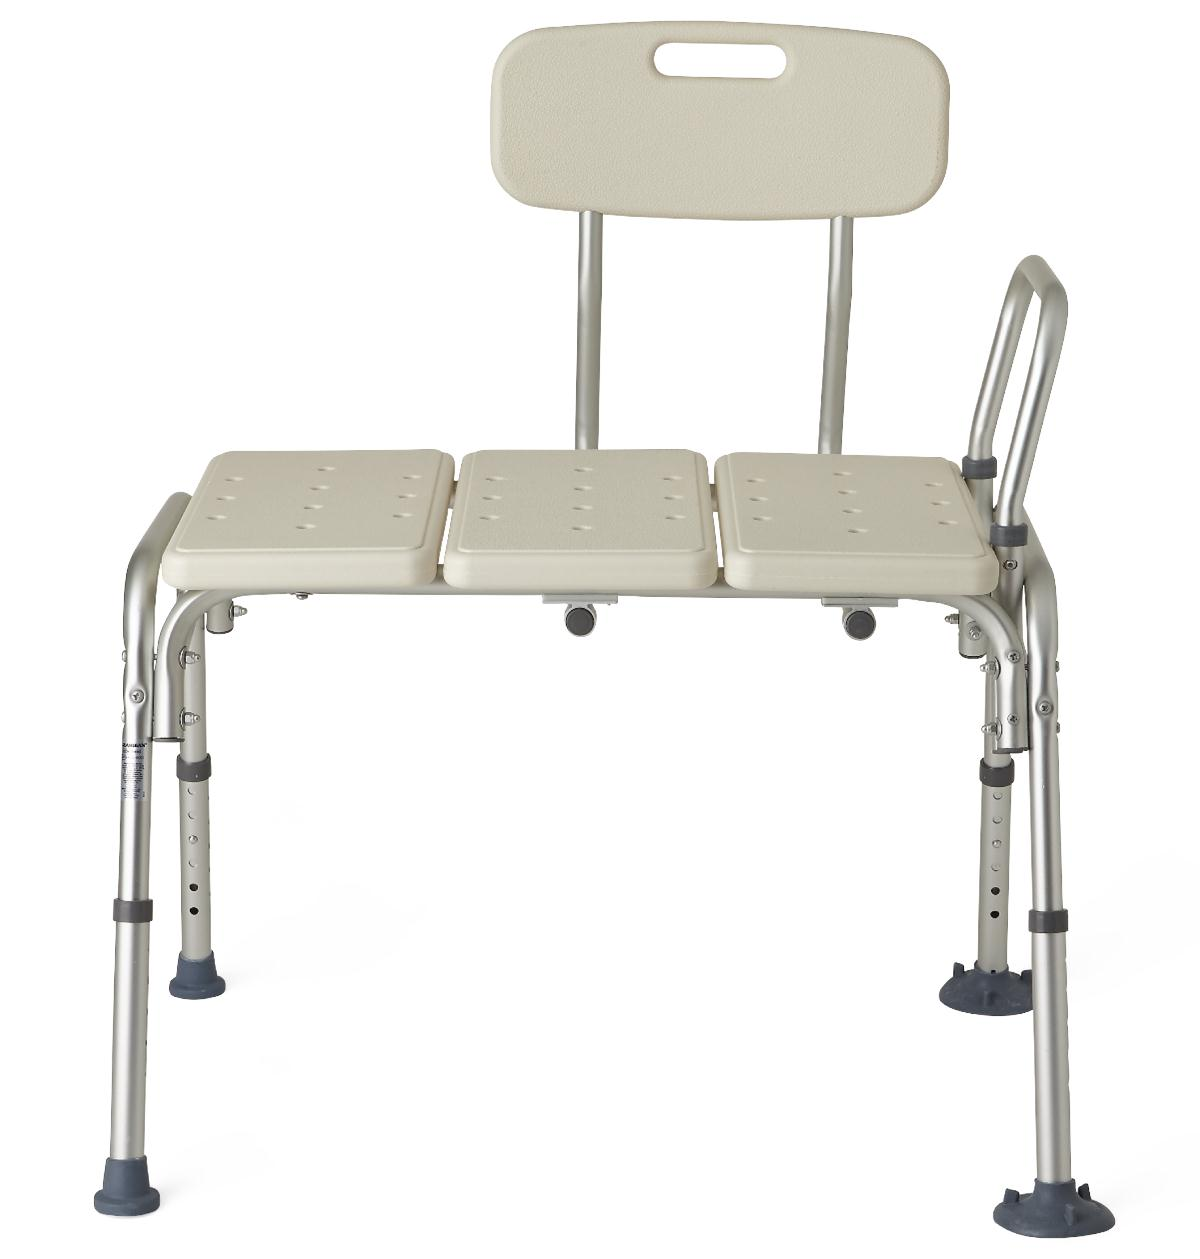 Shower Transfer Seat | Transfer Tub Bench | Shower Benches for Disabled